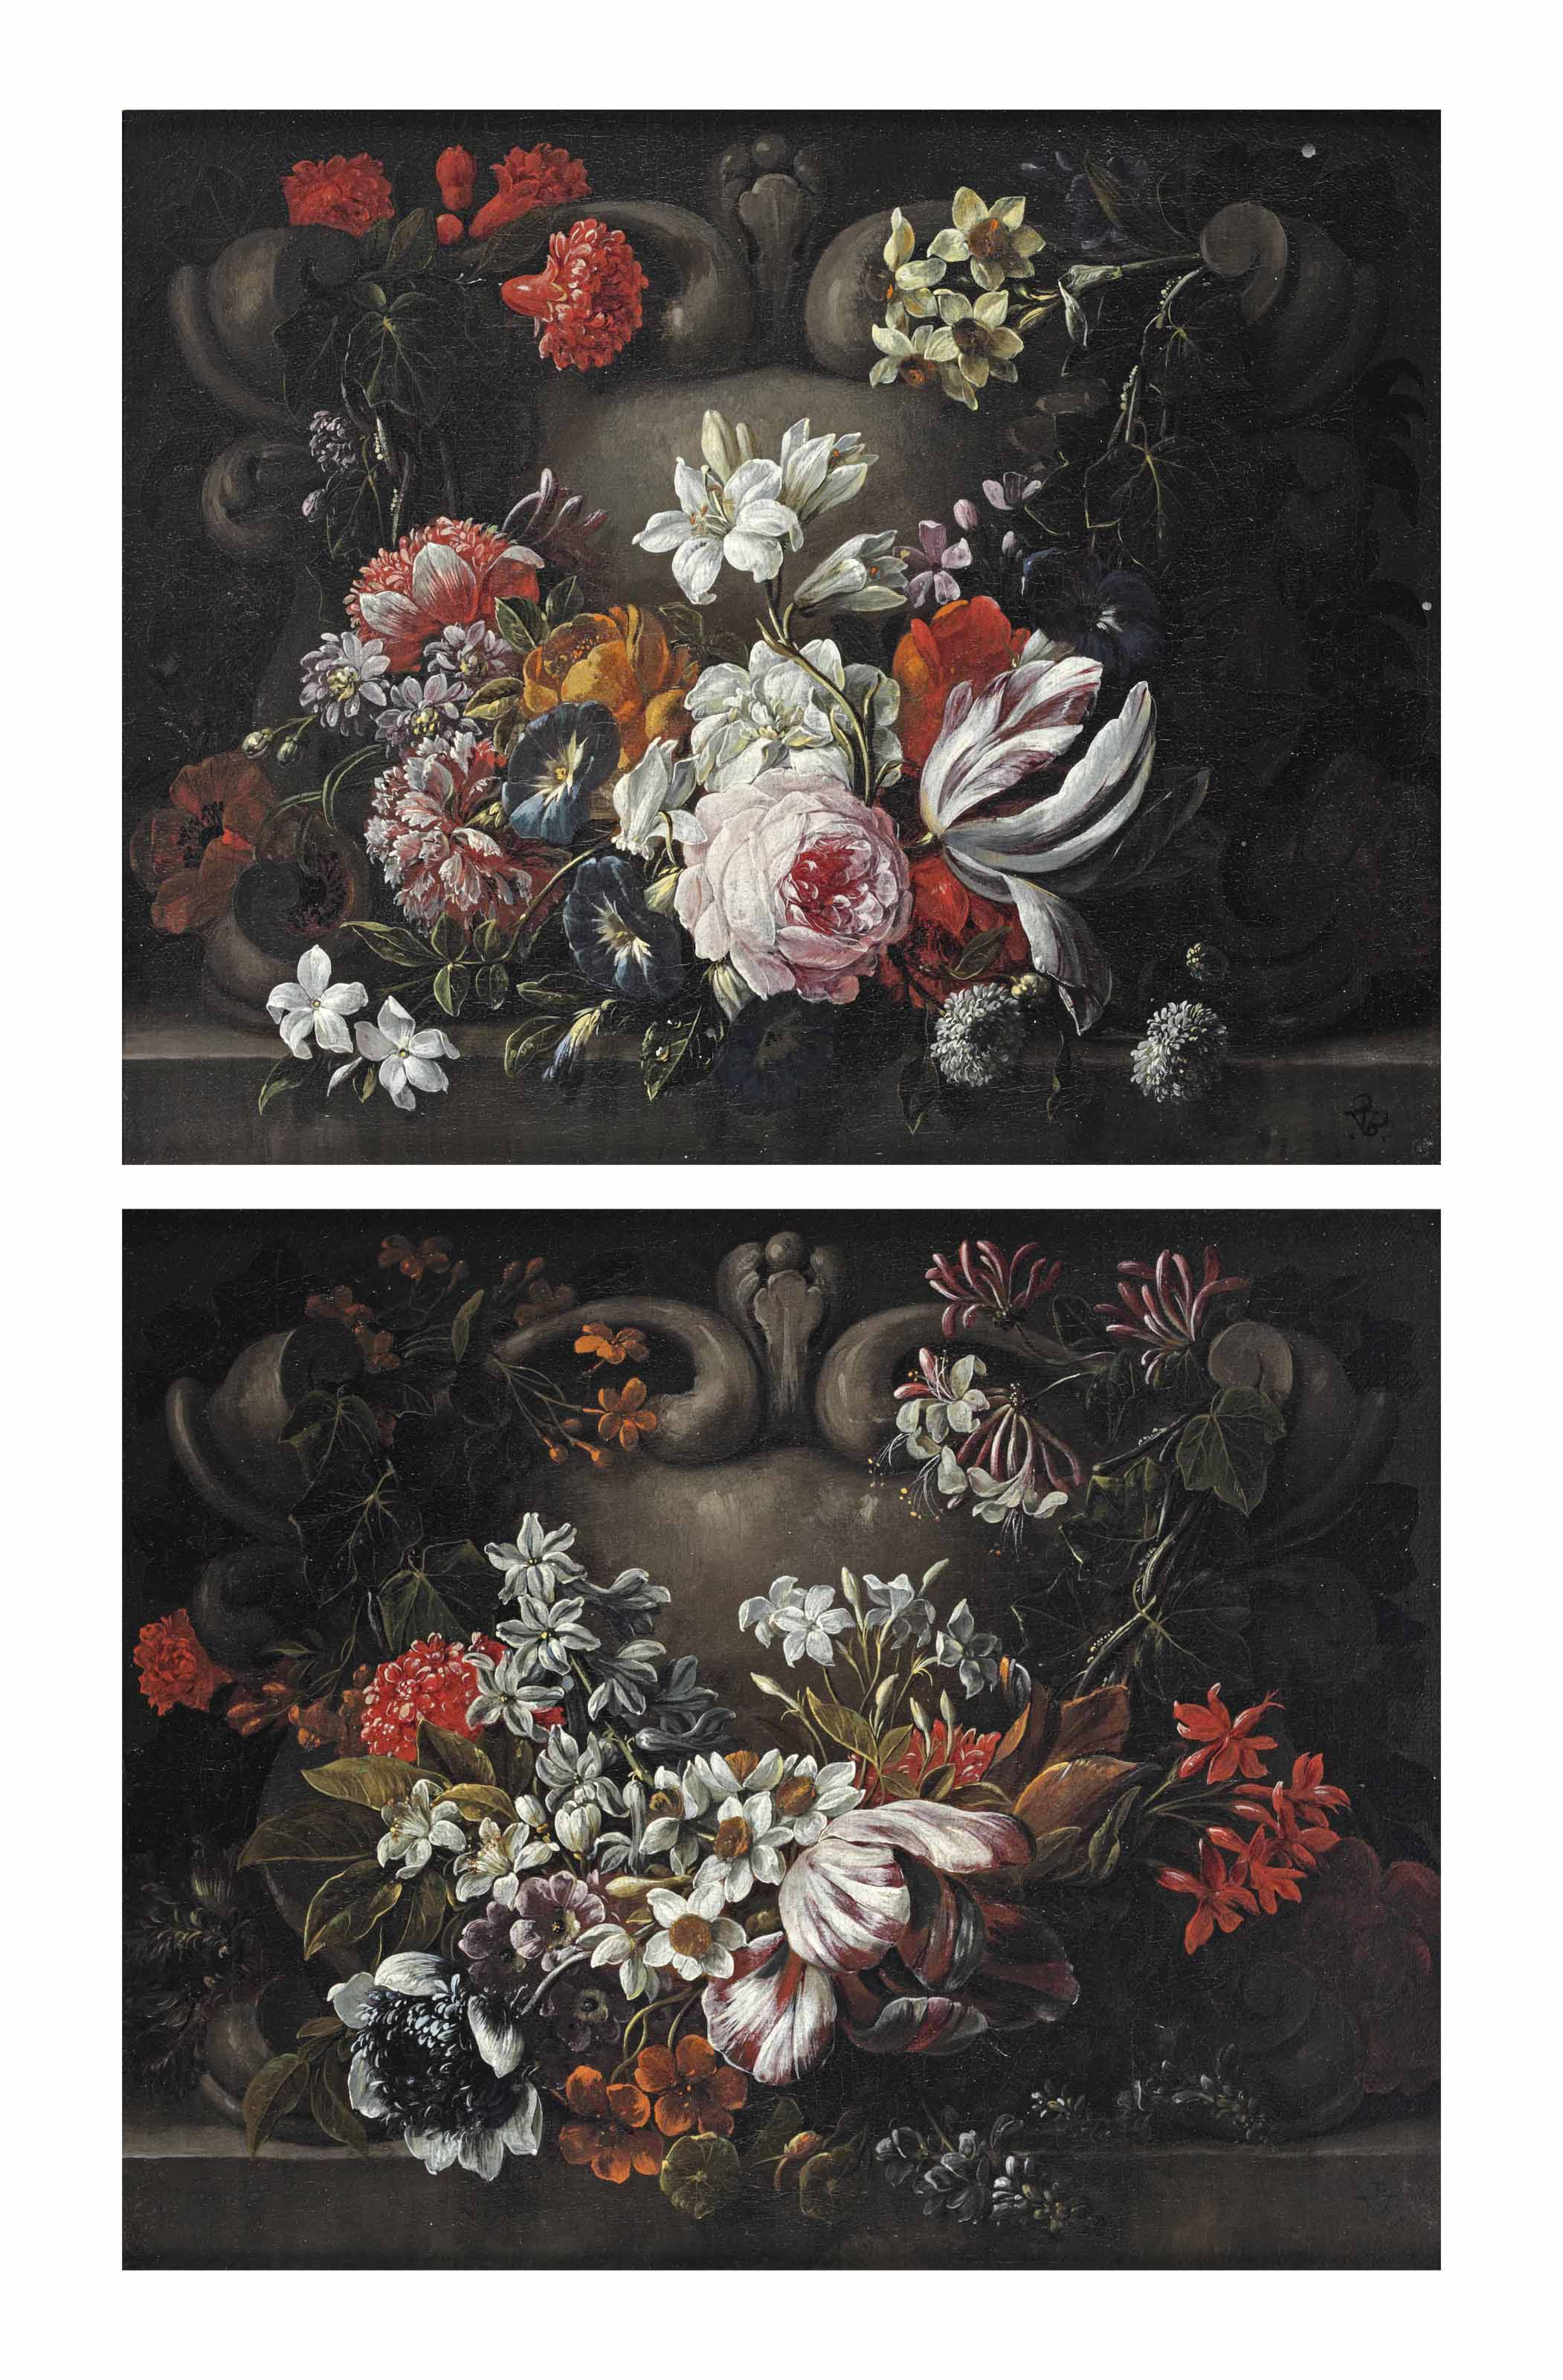 A tulip, jasmine, chrysanthemums, narcissi, ivy and various other flowers decorating a feigned stone cartouche; and Roses, morning glory, jasmine, narcissi, poppies, a tulip, ivy and various other flowers decorating a feigned stone cartouche